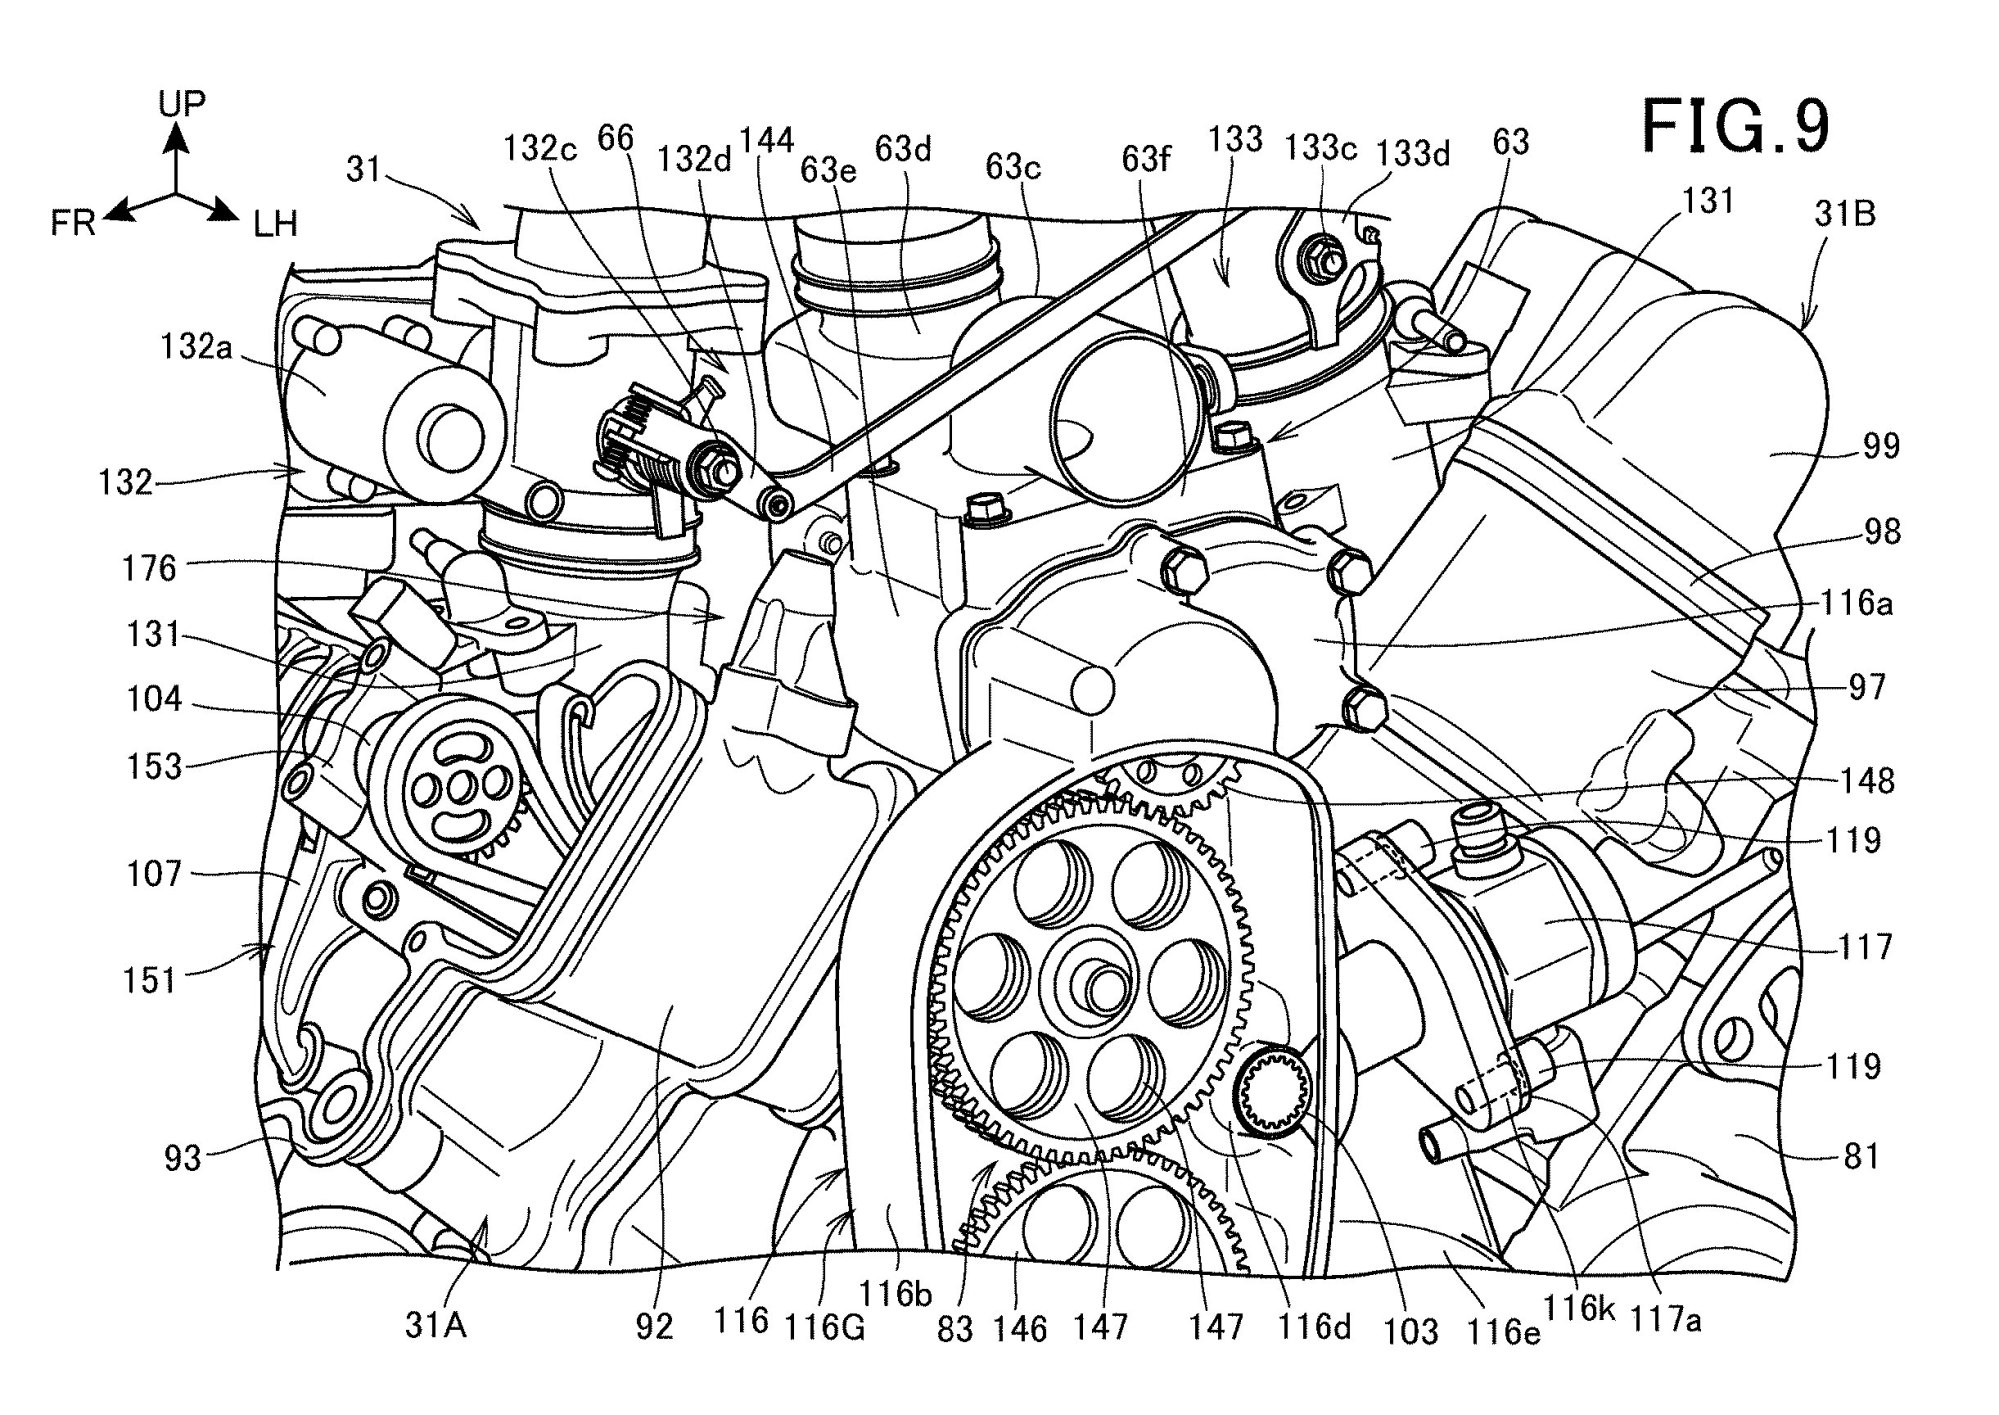 hight resolution of and if a supercharged v twin isn t enough the patents also describe a direct fuel injection system to spraying fuel directly into the cylinder